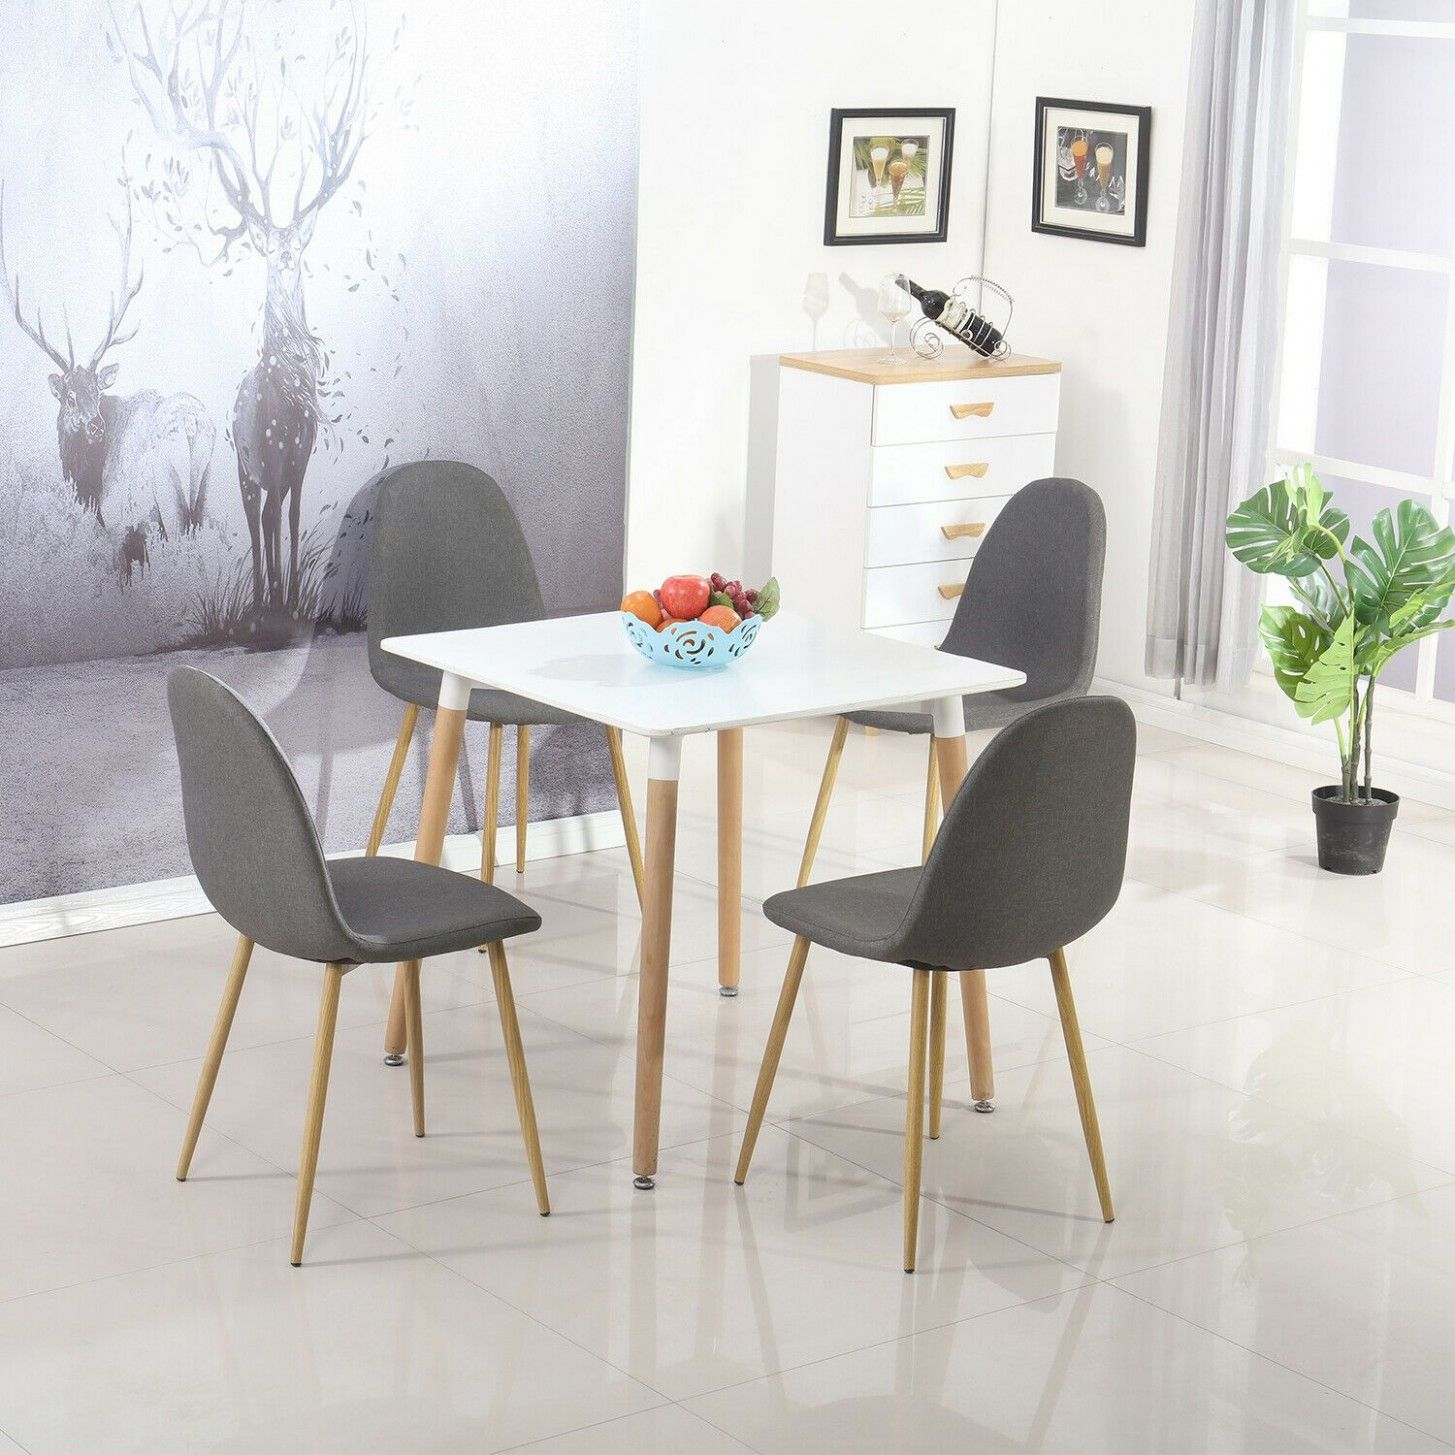 Wooden Bedroom Chairs Di 2020